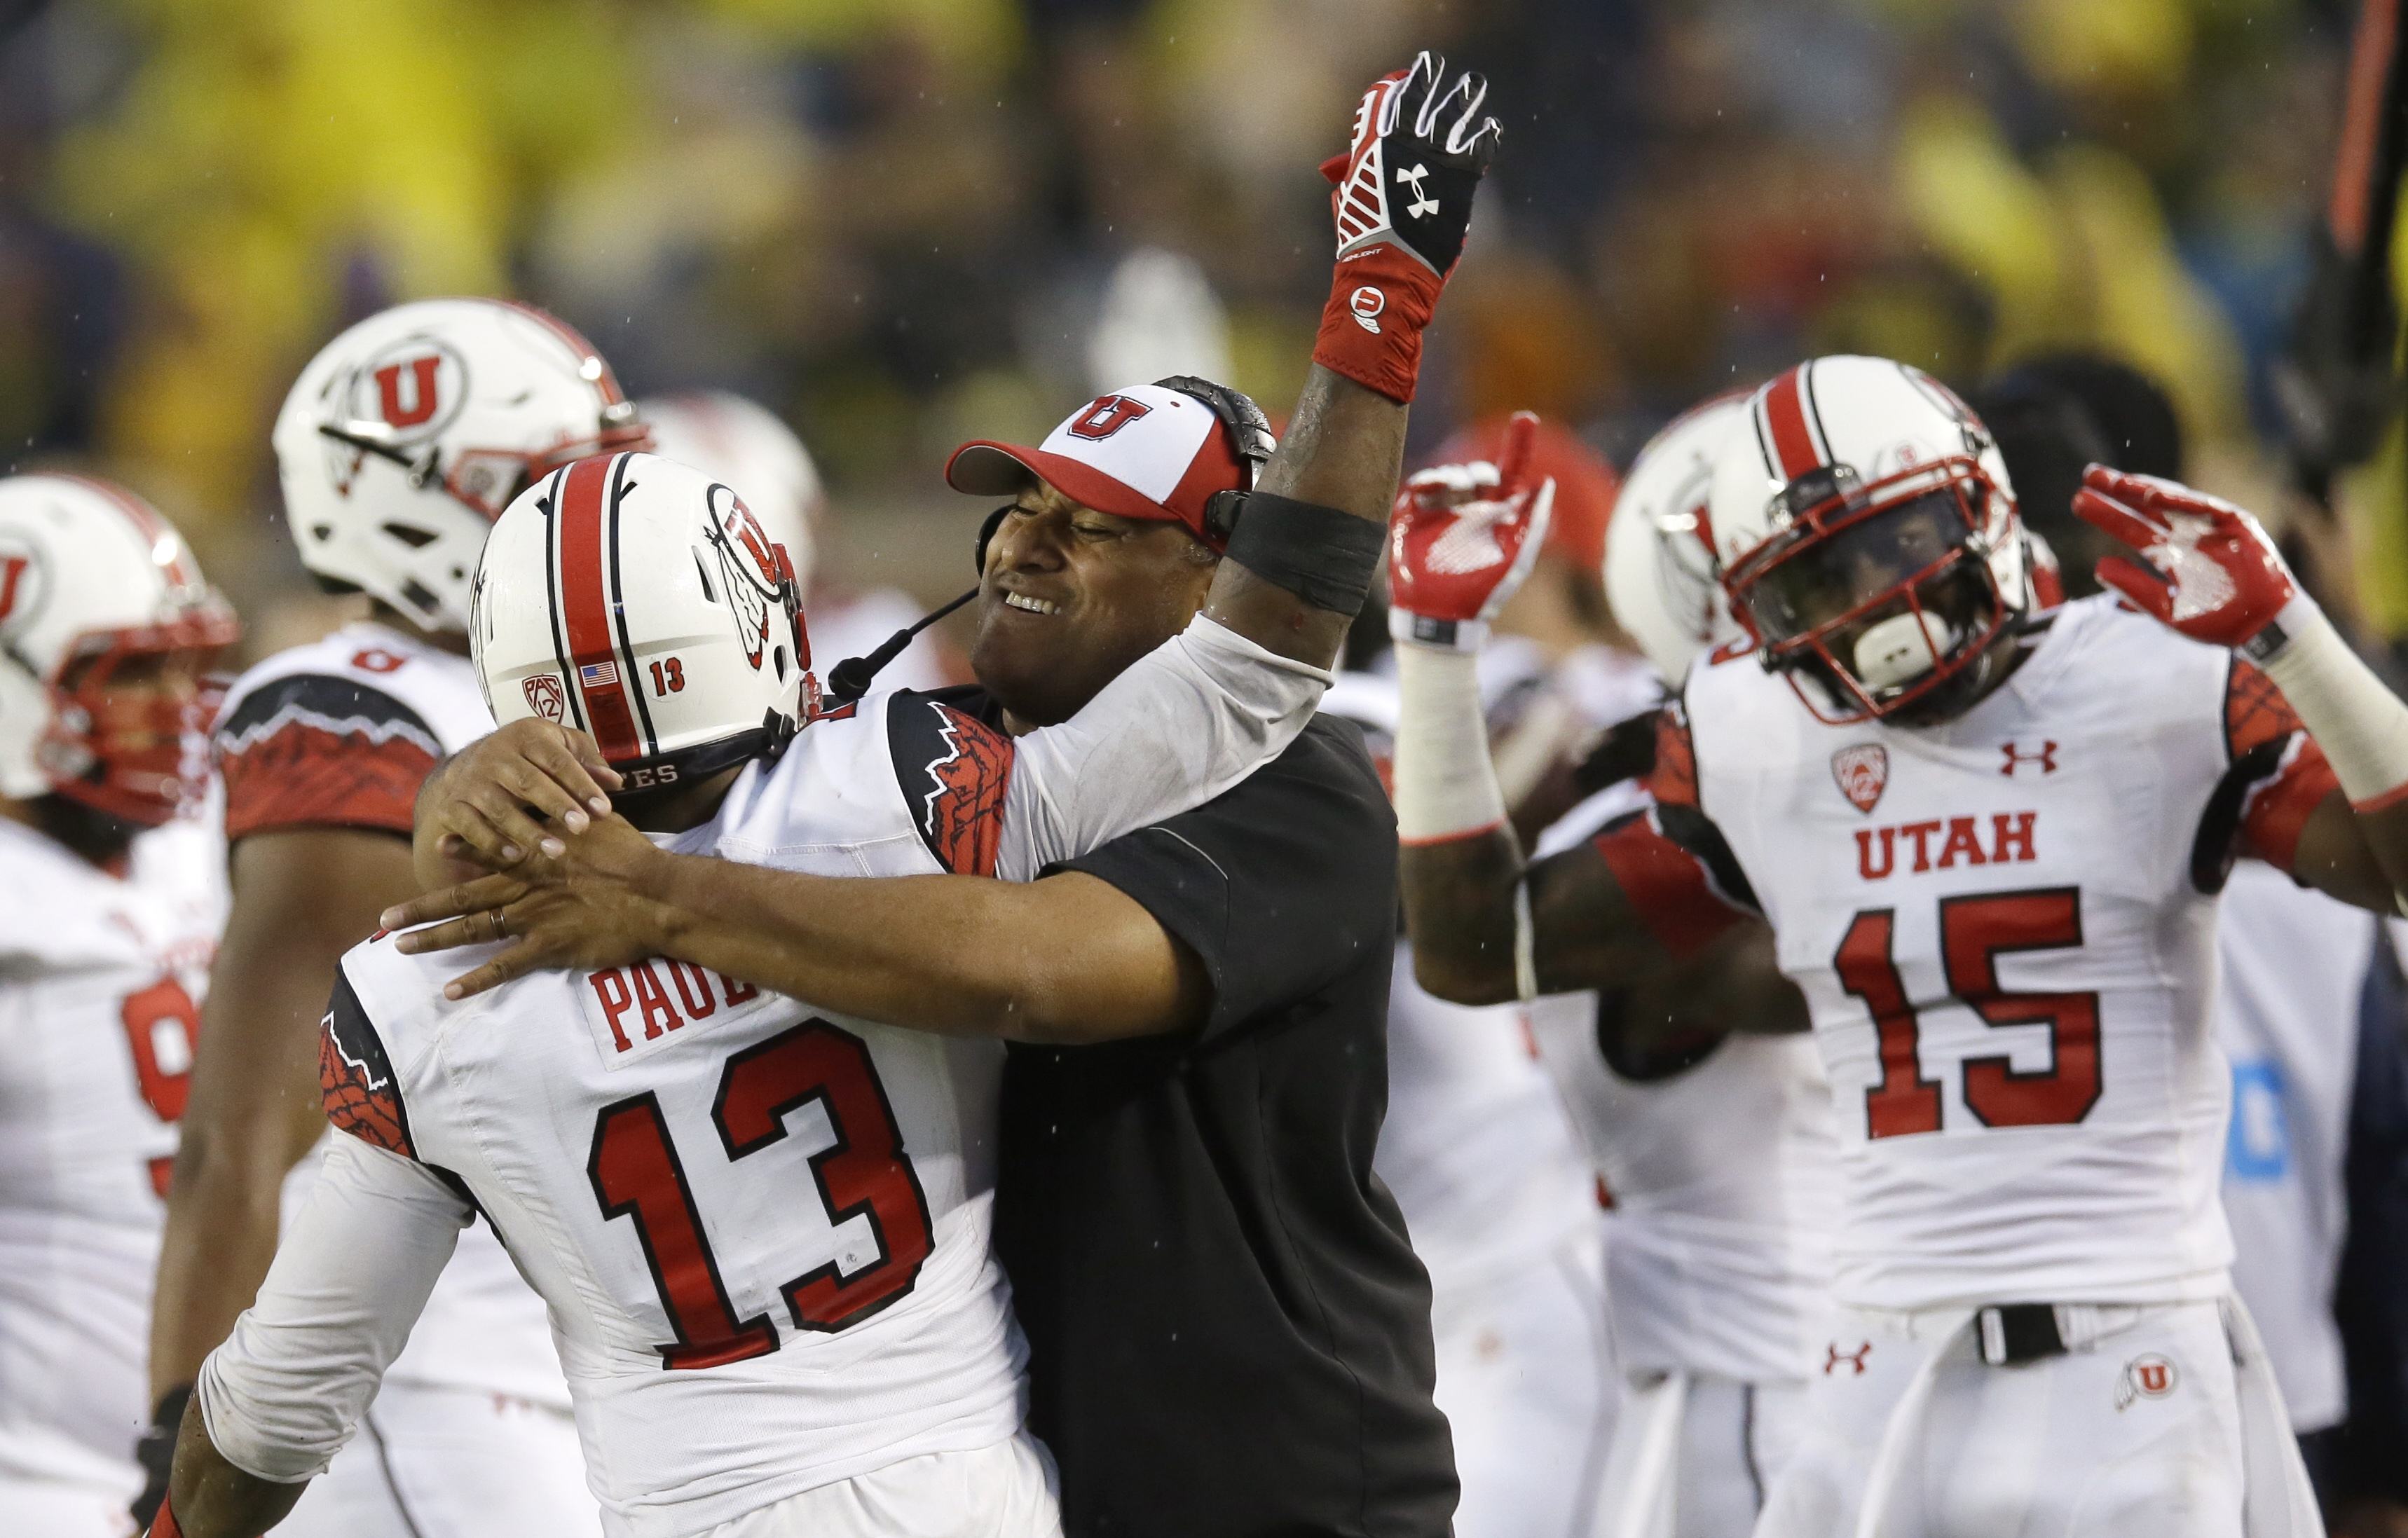 Utah linebacker Gionni Paul (13) is hugged by Assistant Head Coach Kalani Fifita Sitake on the sidelines after he intercepted a pass from Michigan quarterback Devin Gardner during the second half of an NCAA college football game in Ann Arbor, Mich., Satur